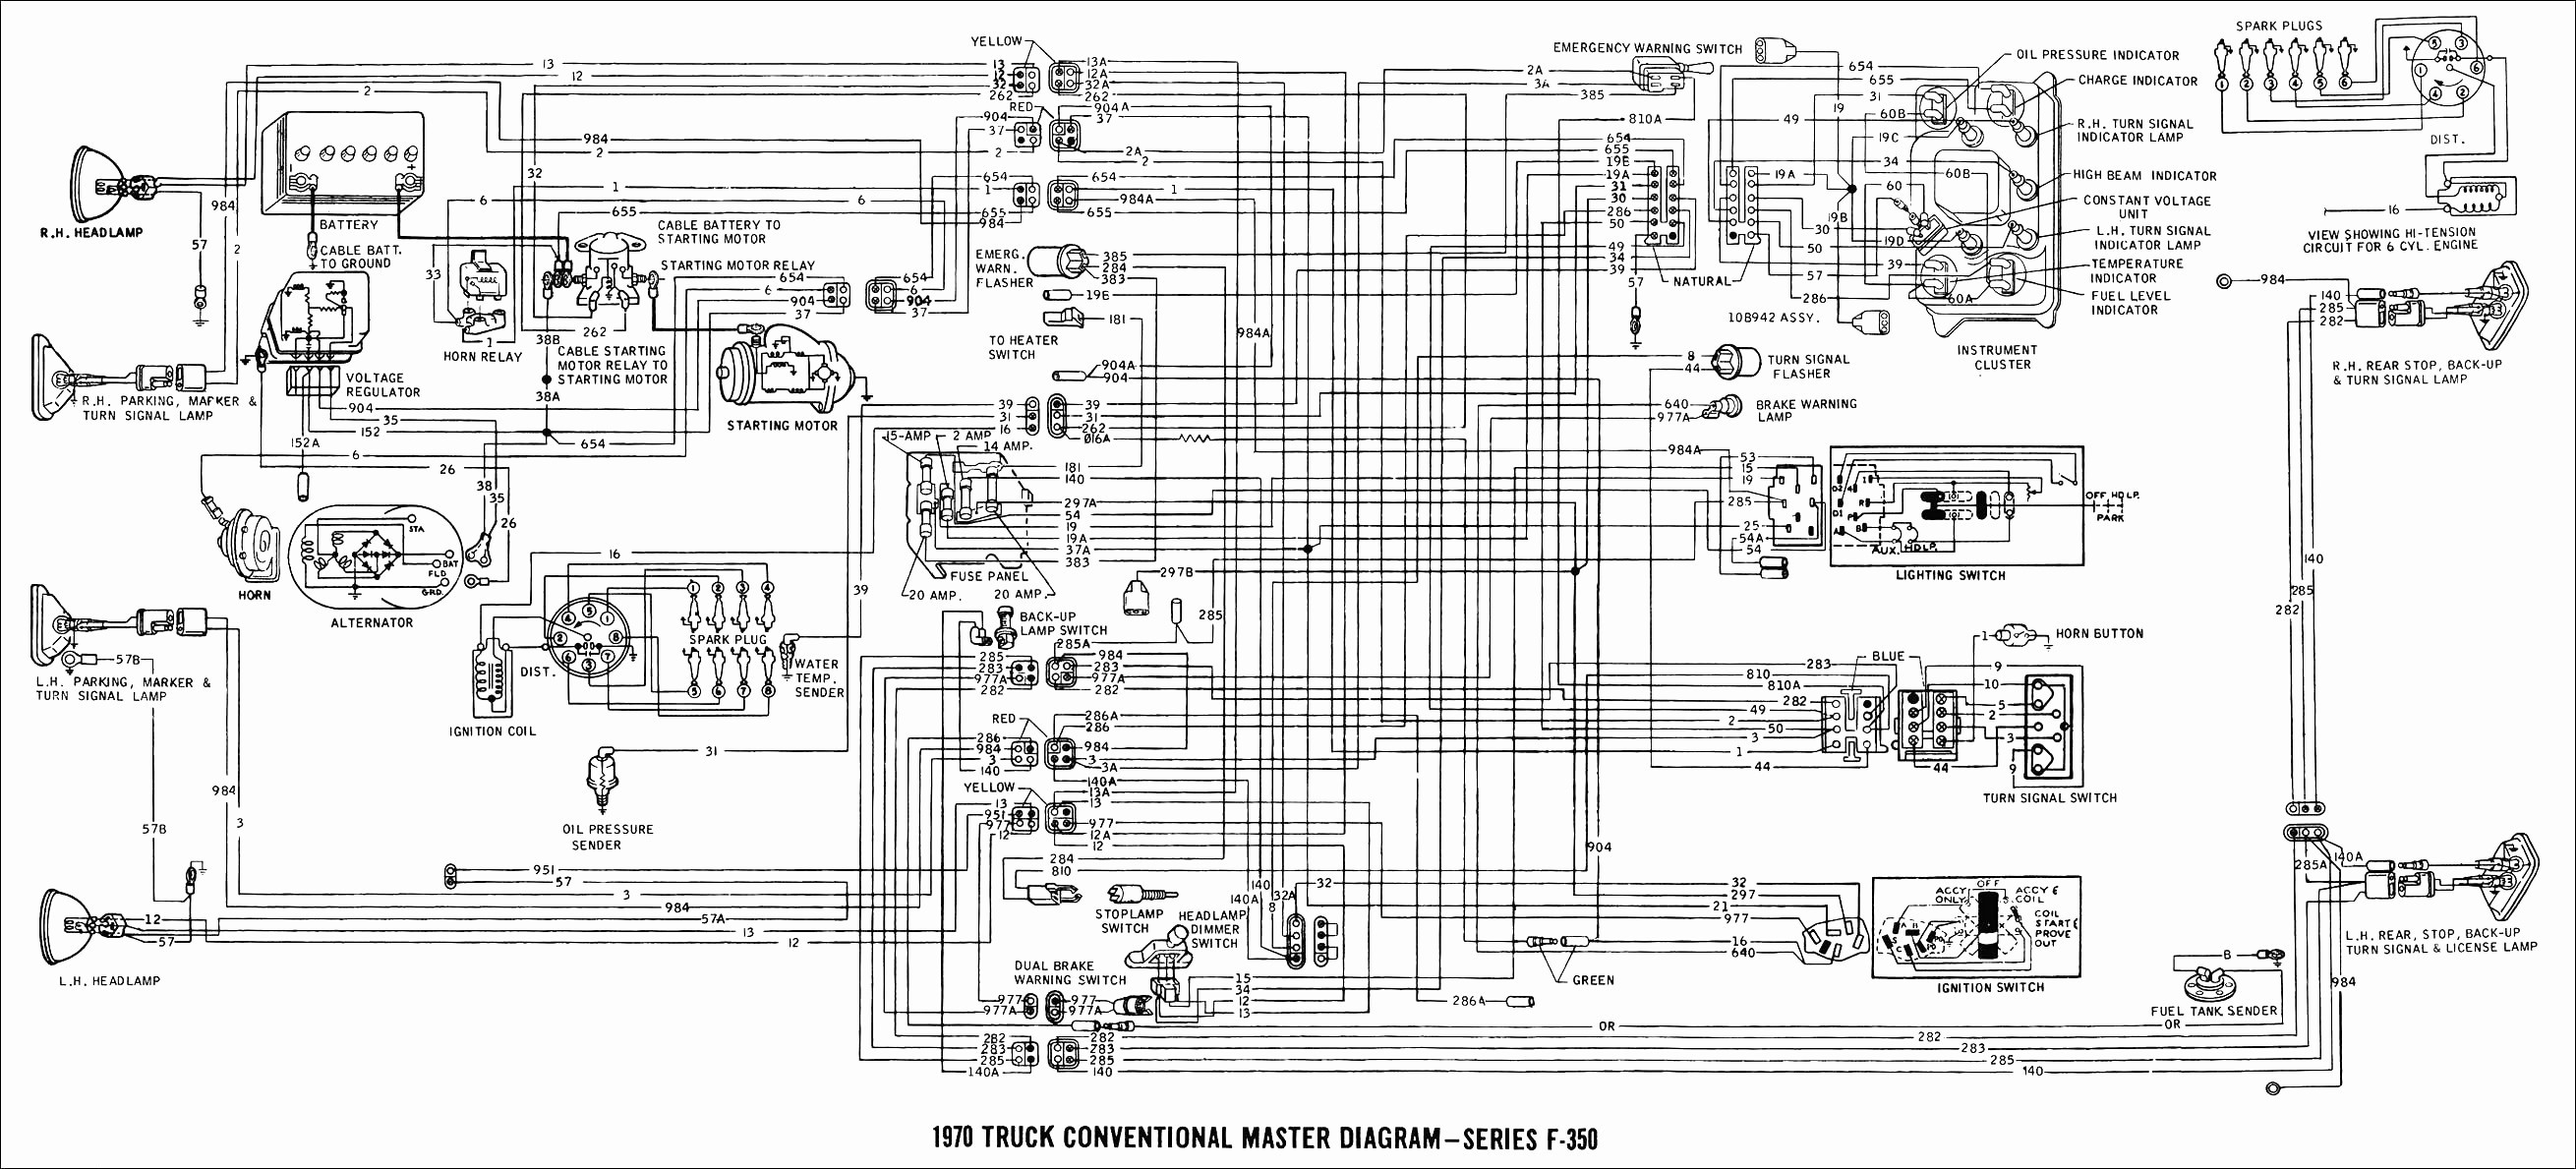 2010 ford Escape Engine Diagram In Addition ford Relay ... Wiring Diagram Ford Escape Starting on